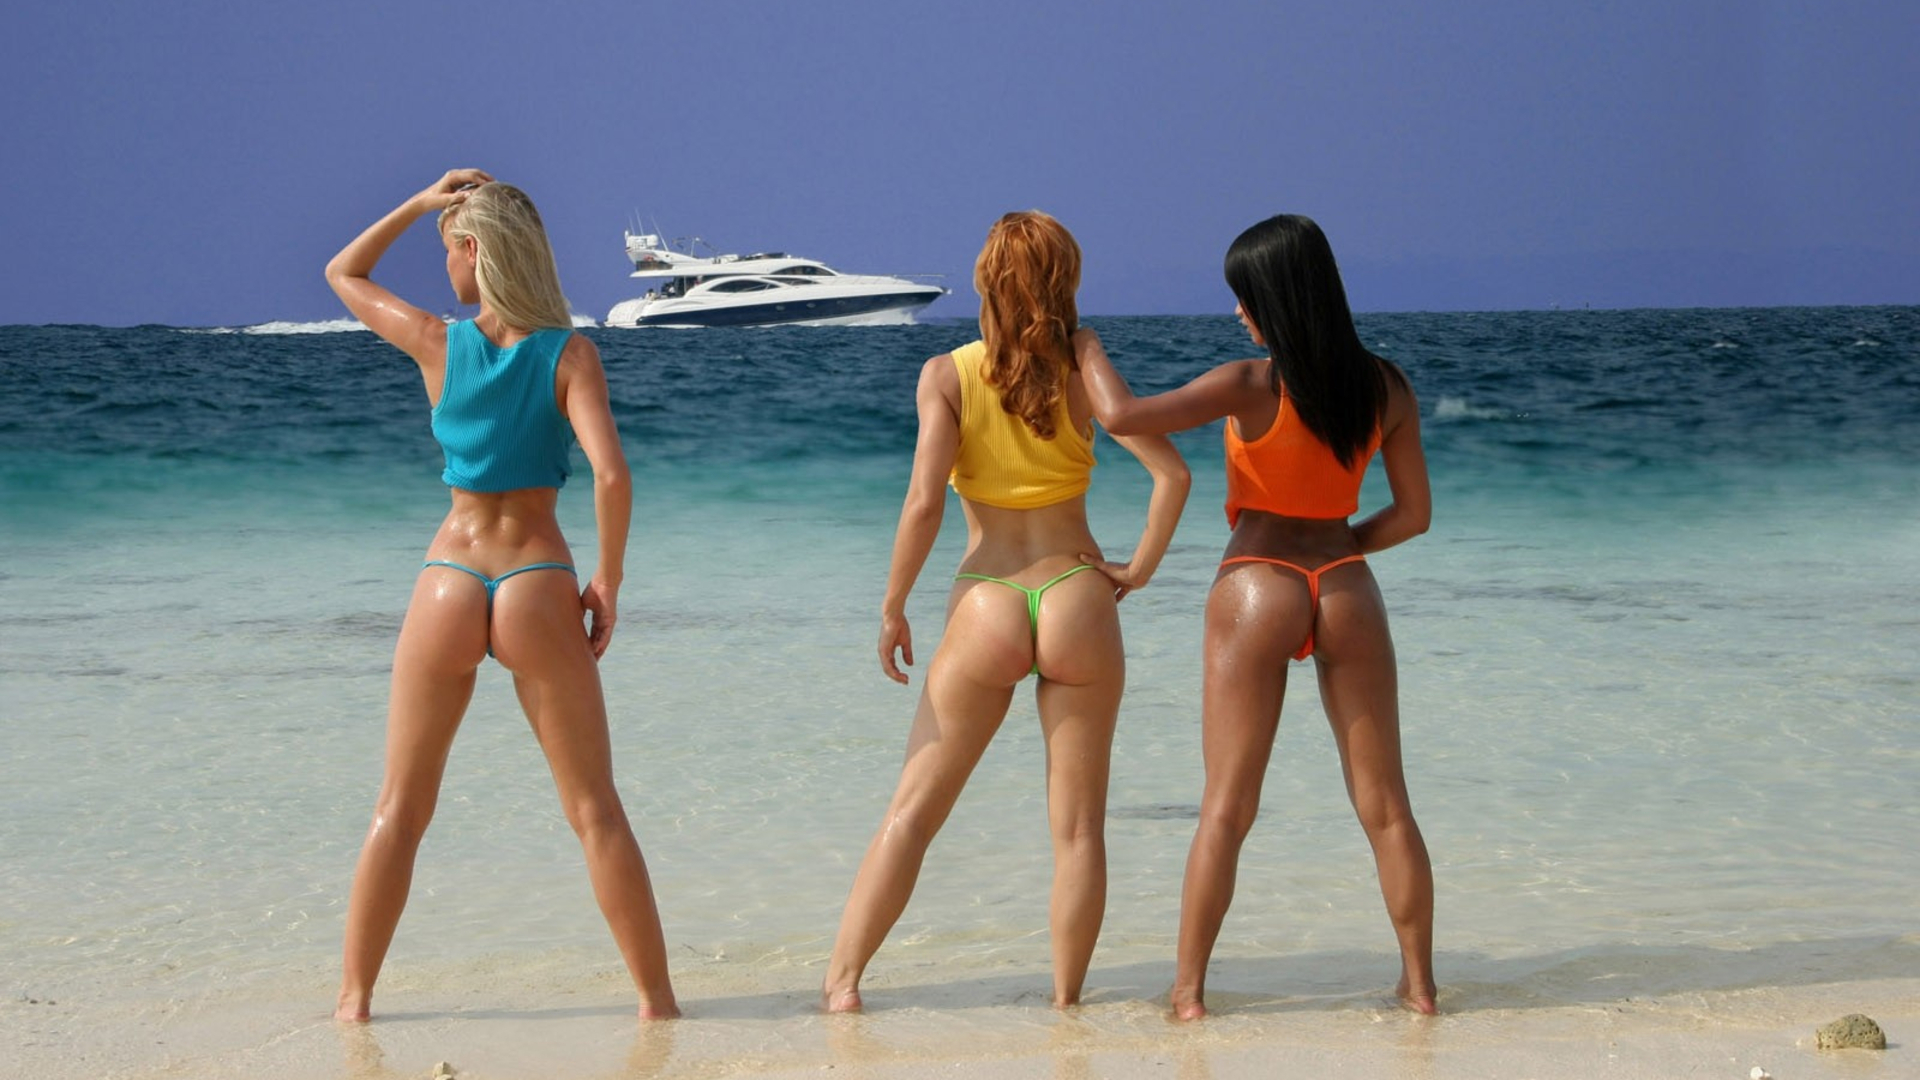 copalis beach black single women Copalis beach's best free dating site 100% free online dating for copalis beach singles at mingle2com our free personal ads are full of single women and men in copalis beach looking for serious relationships, a little online flirtation, or new friends to go out with.